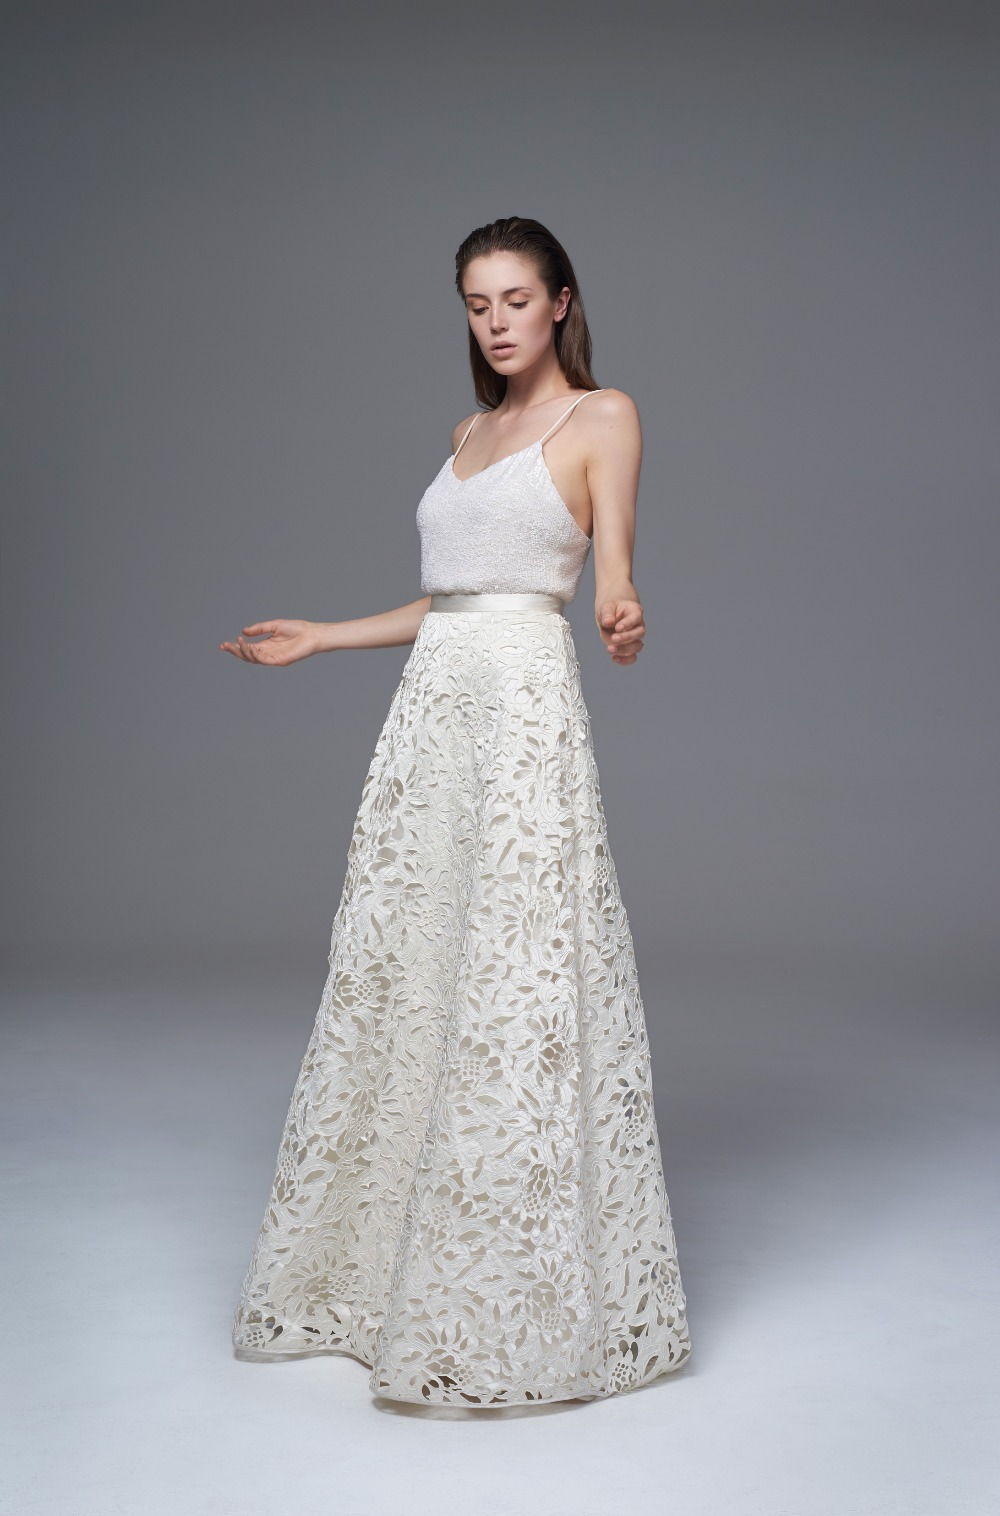 ISOBEL SKIRT CELINE CAMI  FRONT from the Halfpenny Bridal Collection